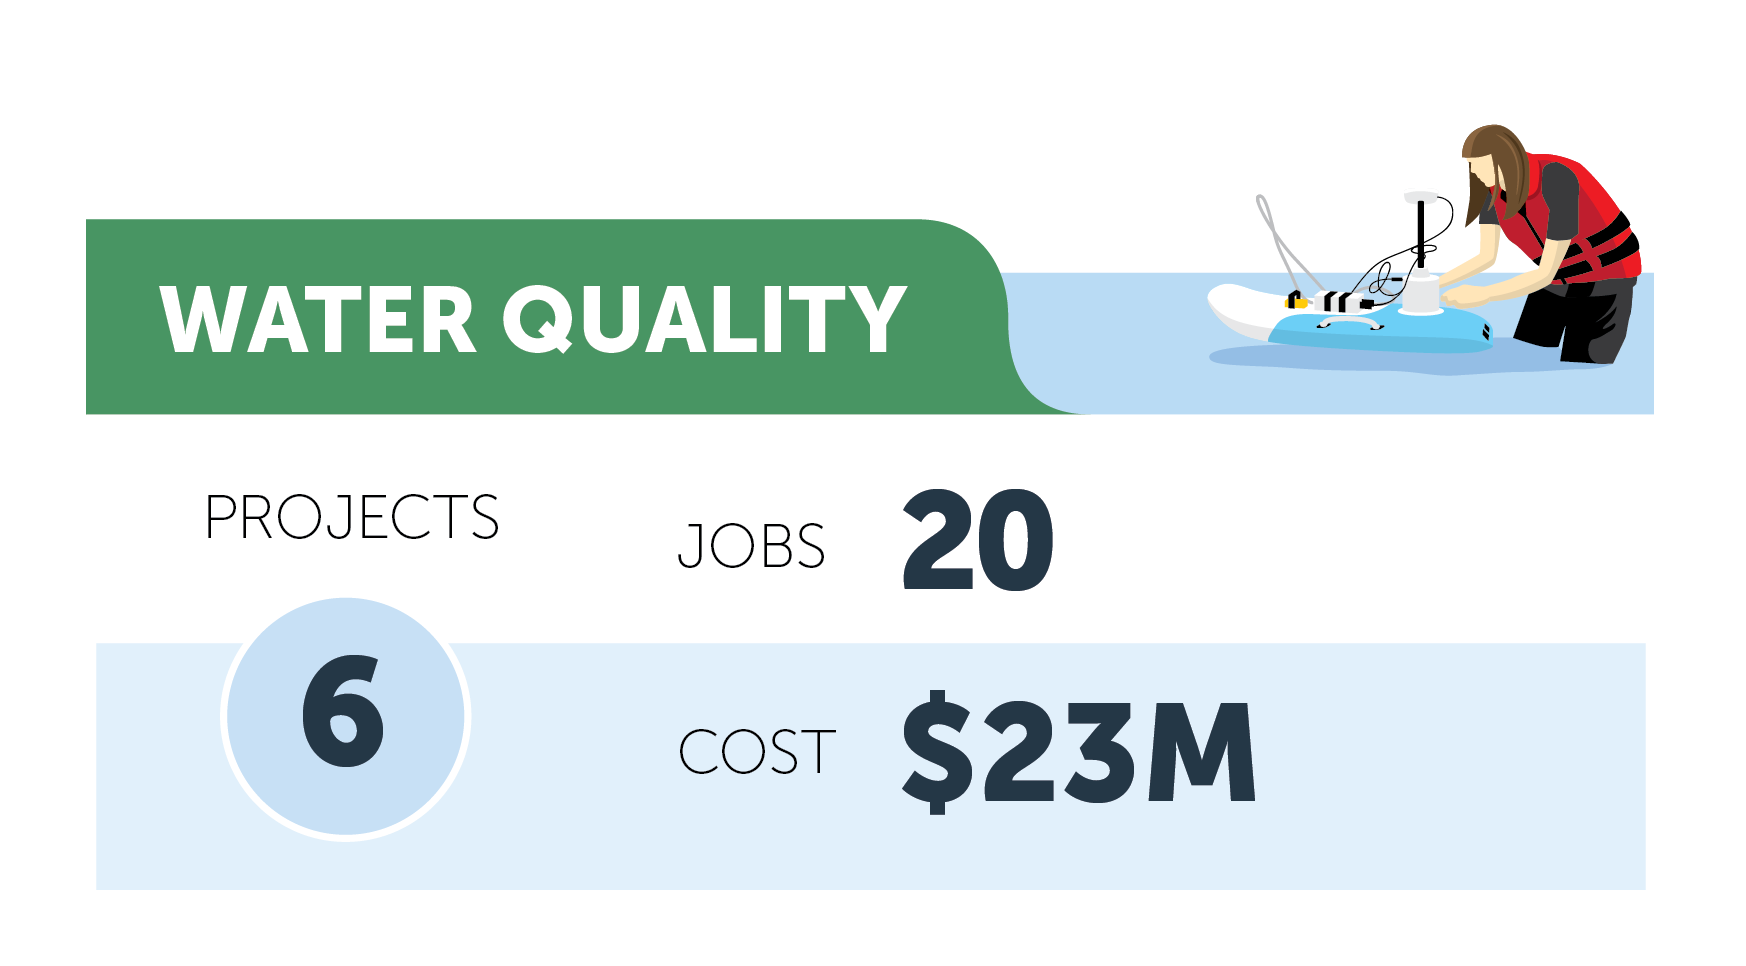 Water quality figures